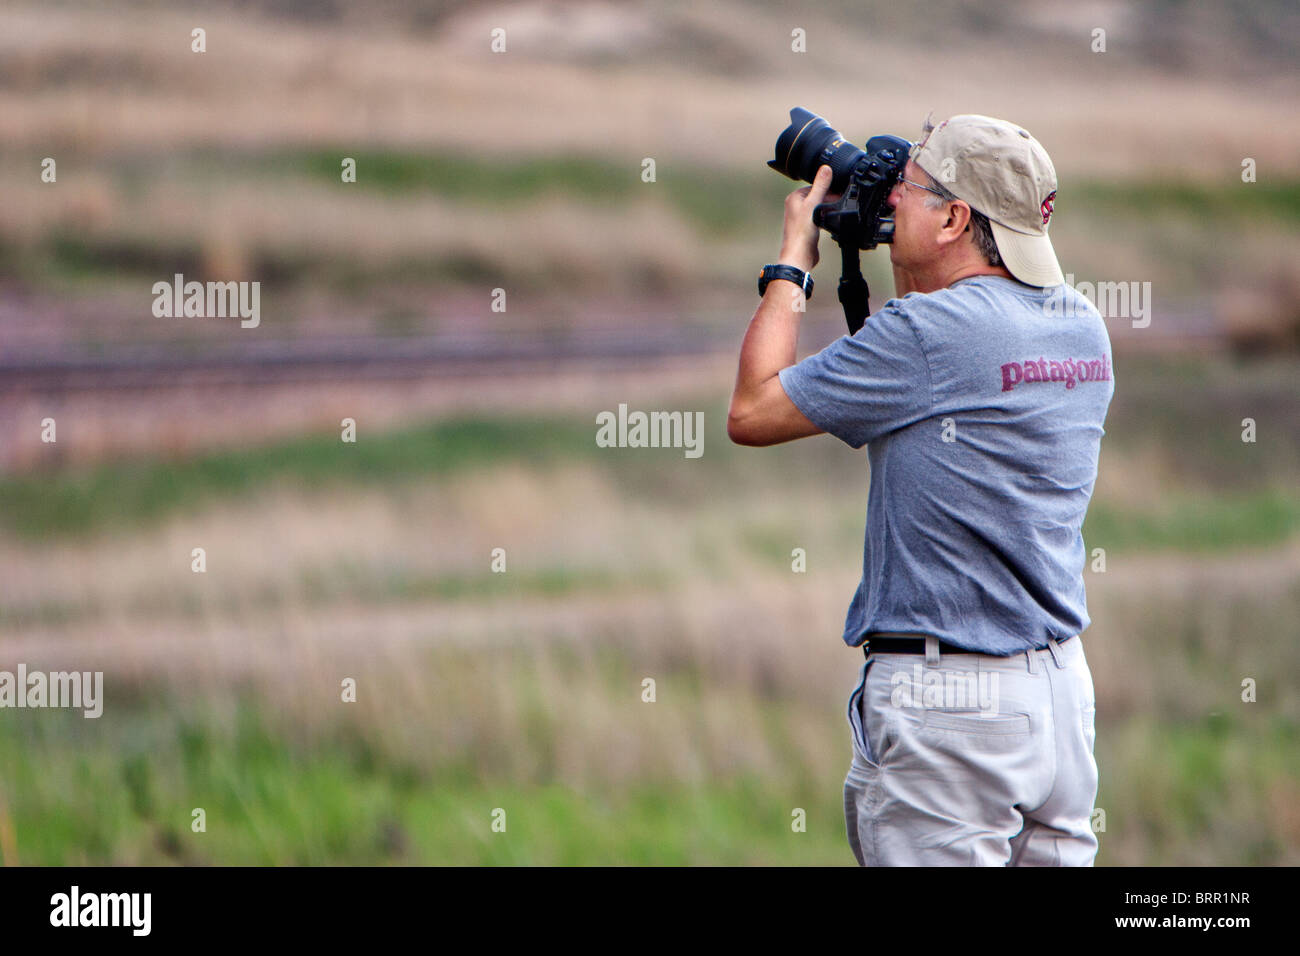 Professional photographer Jim Reed takes a photo, May 29, 2010. - Stock Image